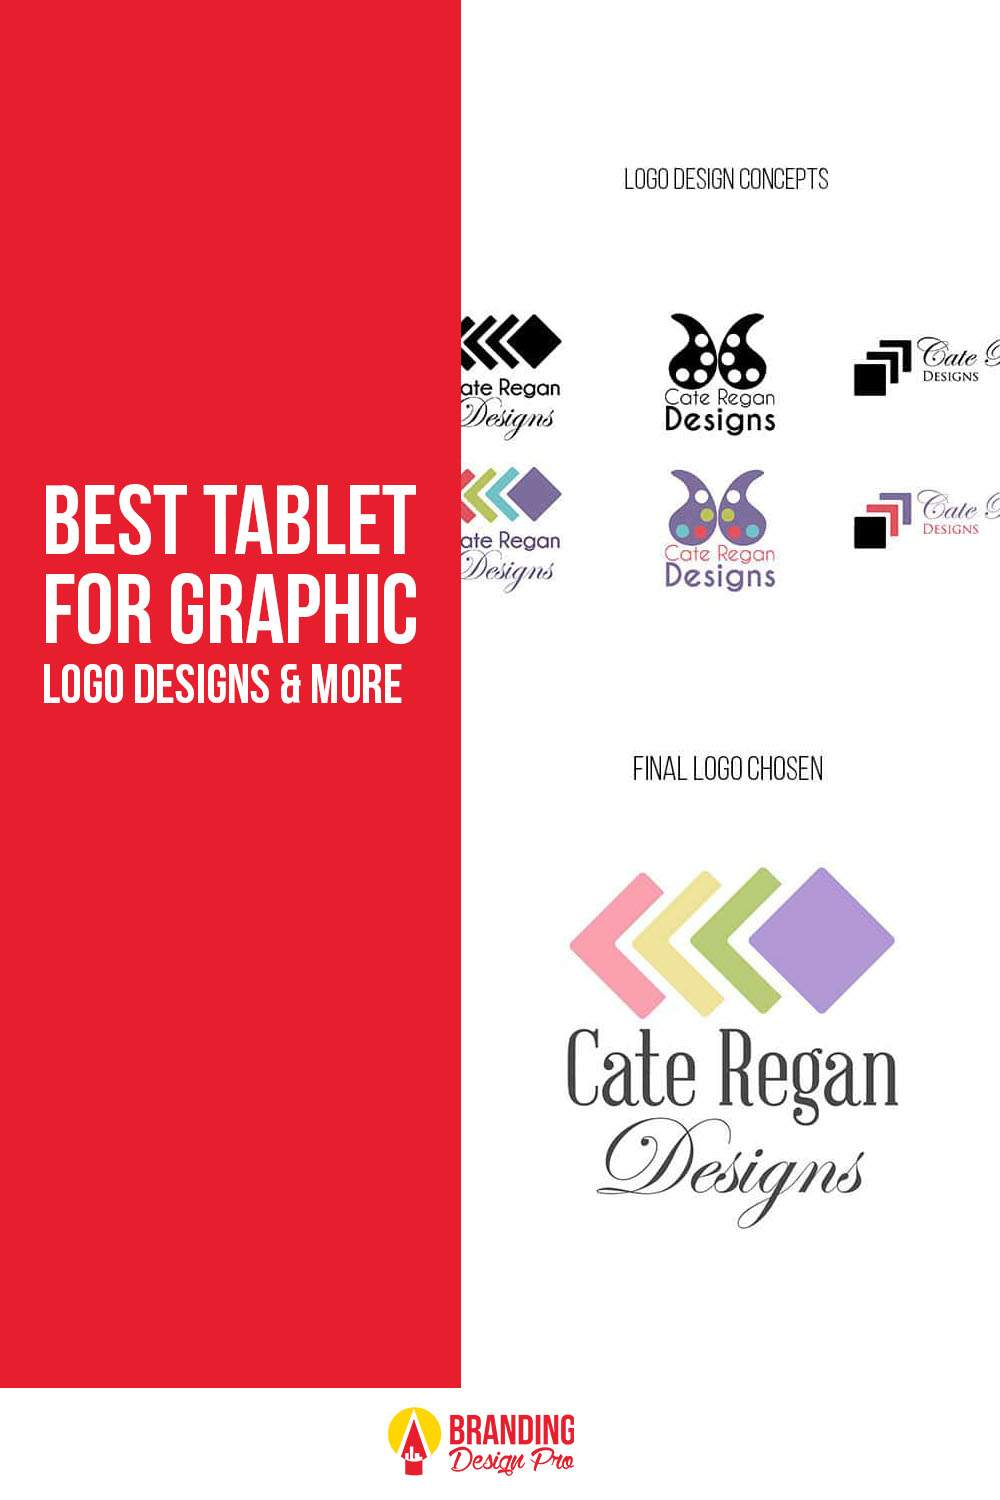 The Best Tablet For Graphic Design